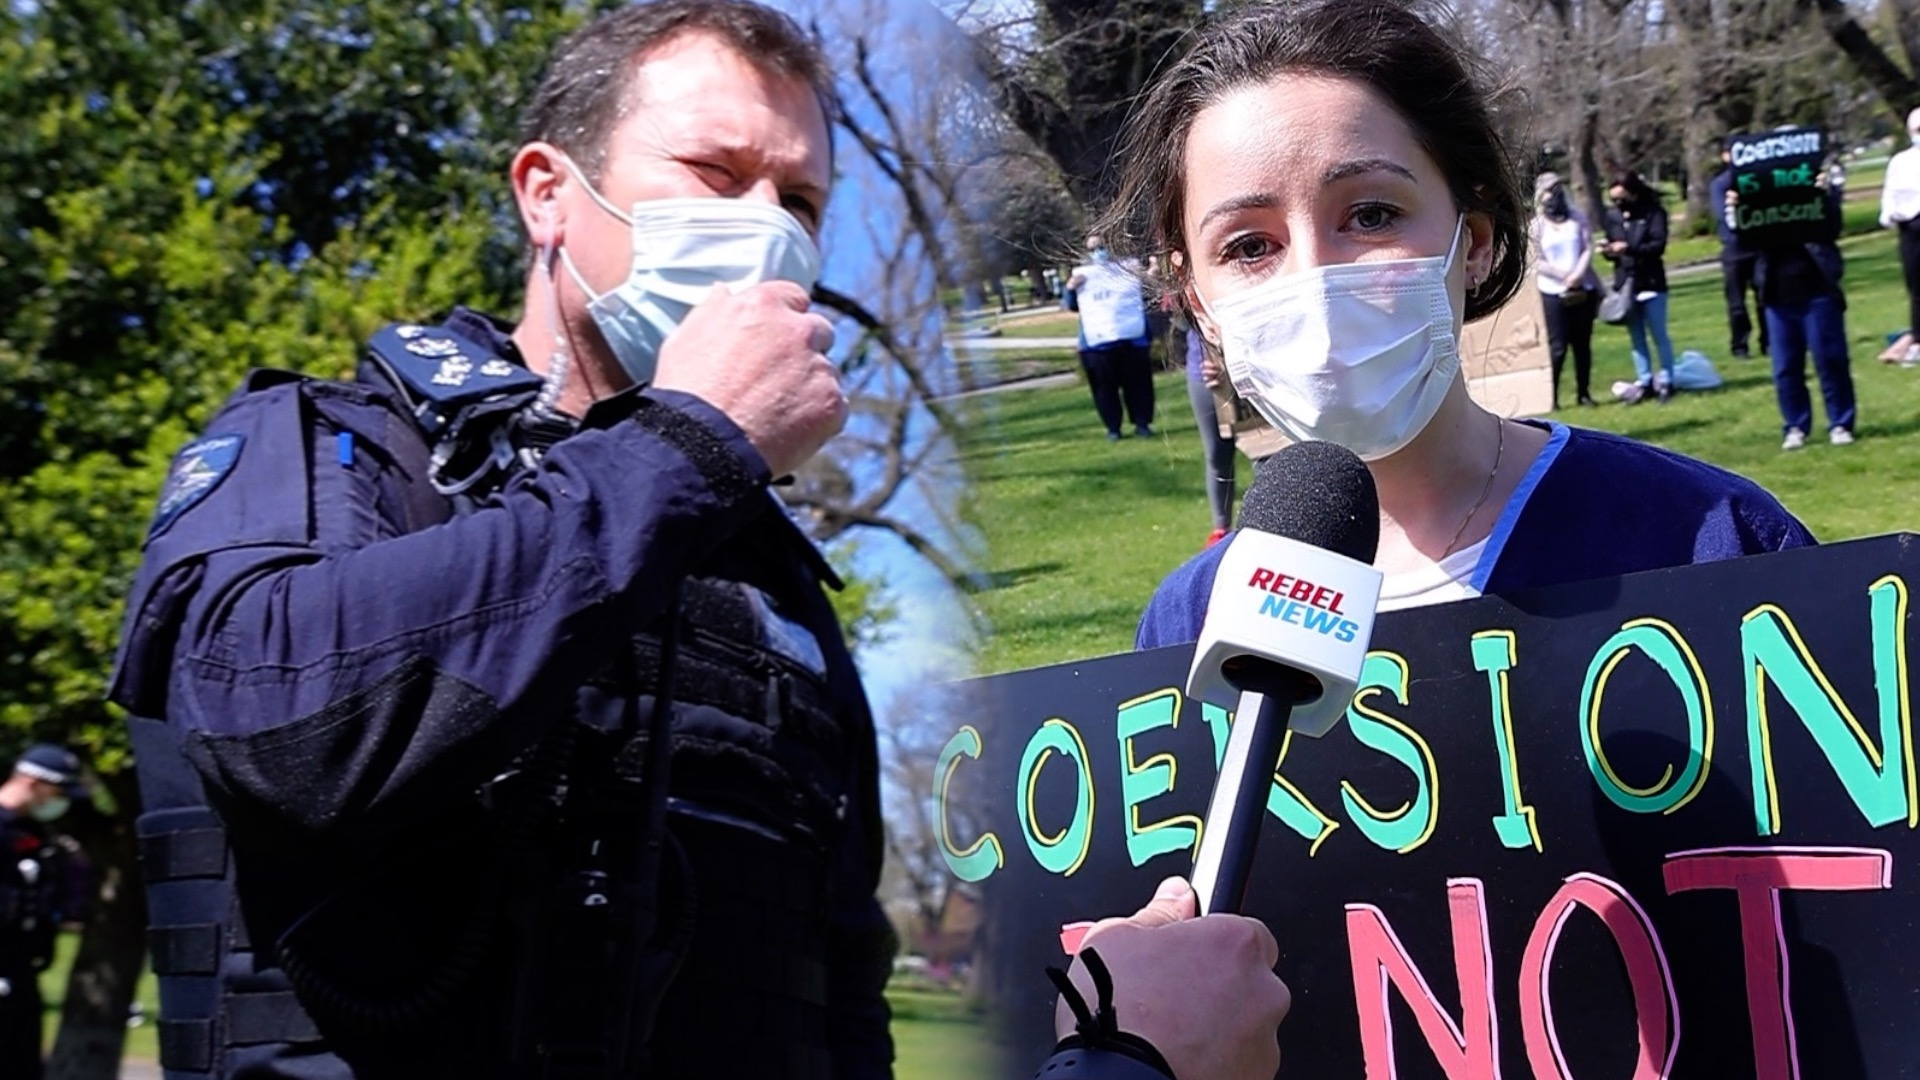 WATCH: Police move in to force HEALTHCARE WORKERS out of protesting in Melbourne